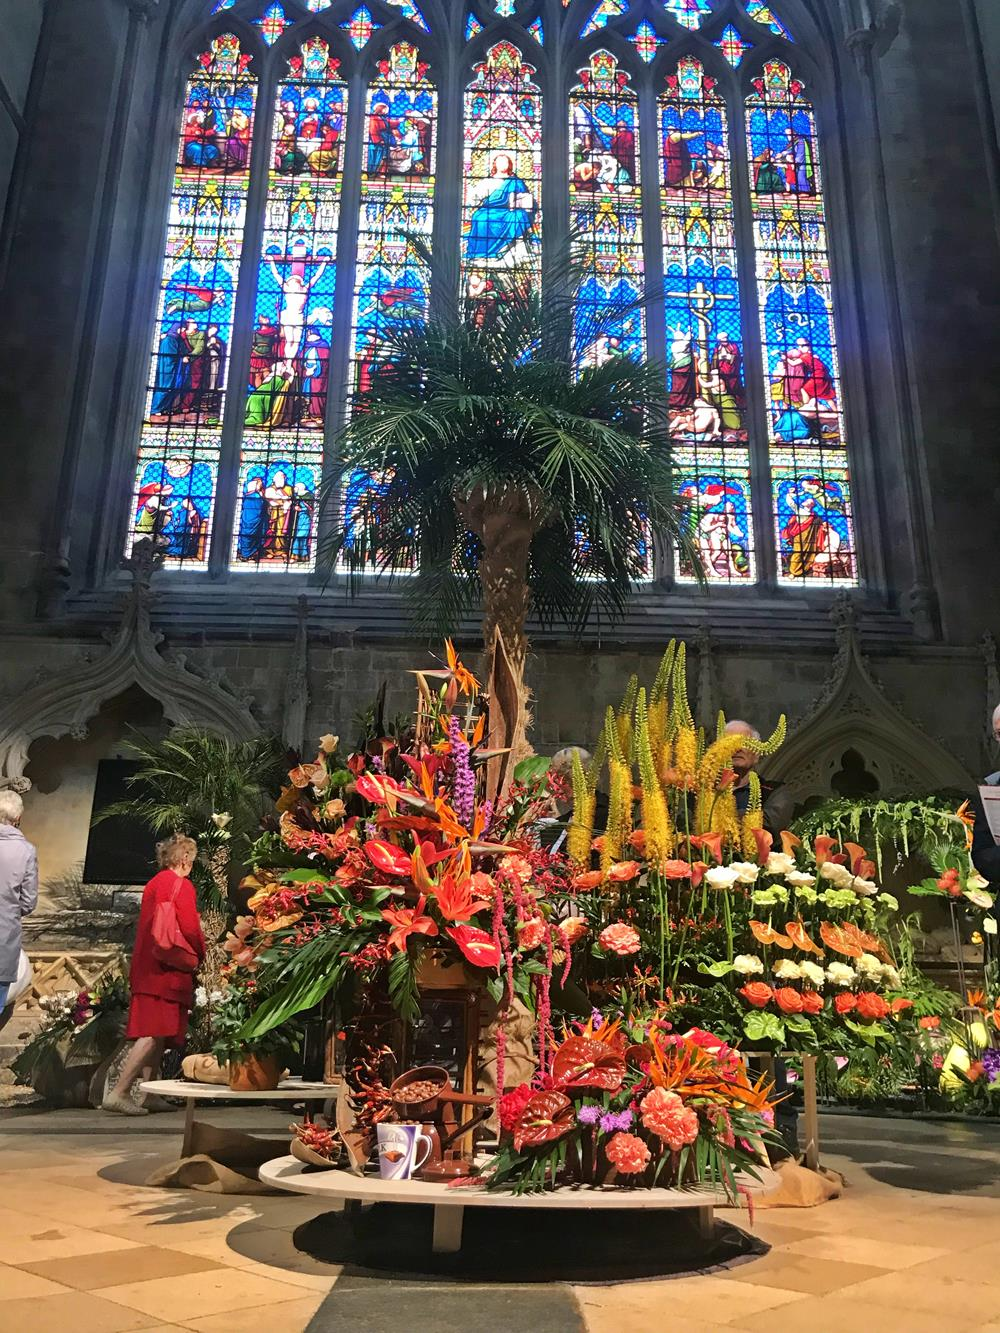 Flower display under stained glass window at Chichester Cathedral